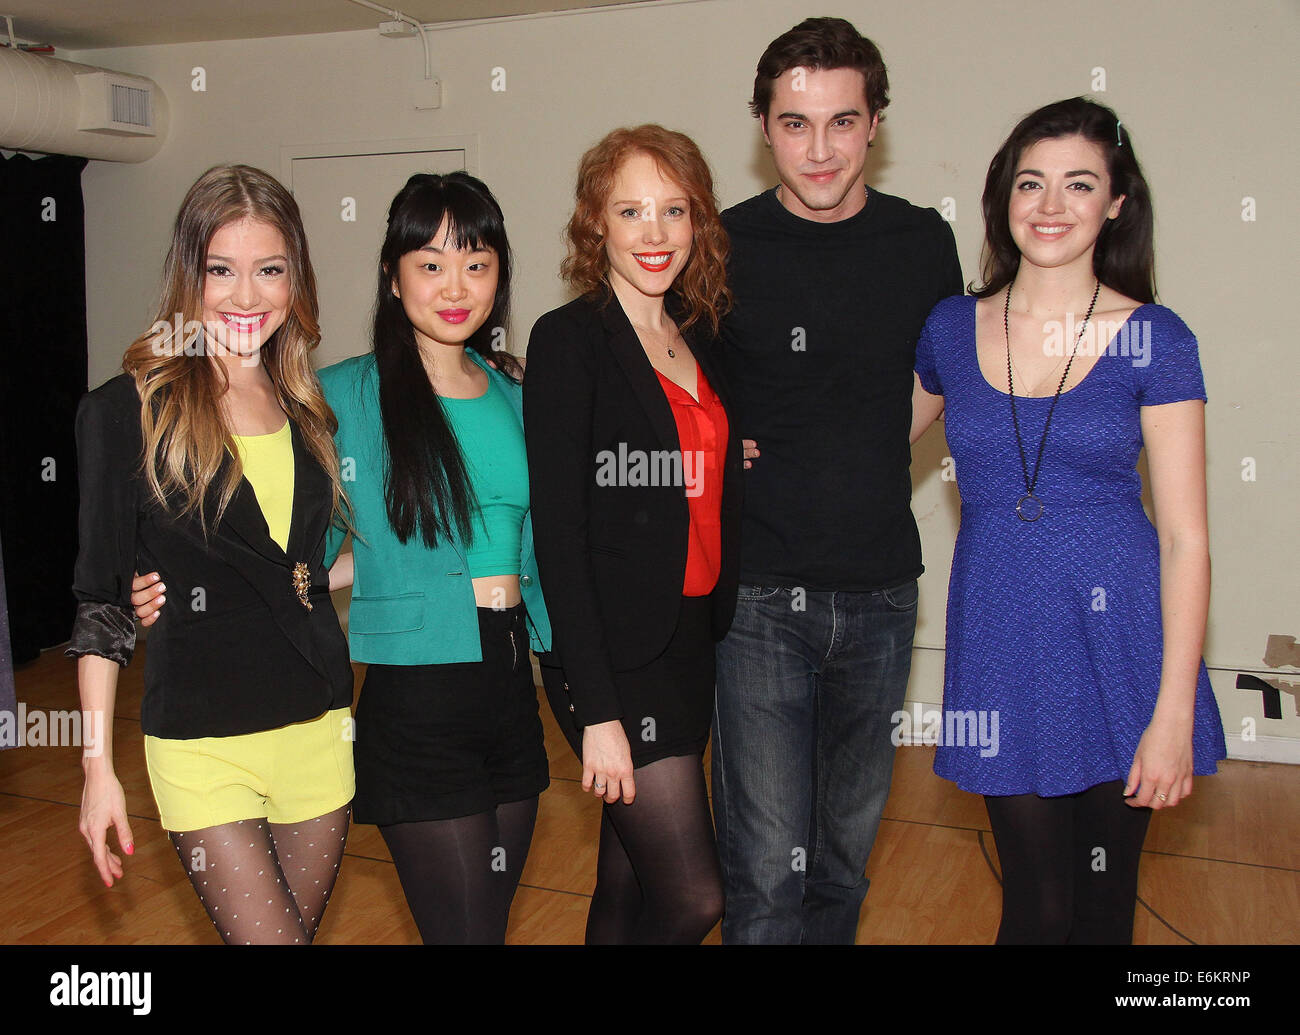 Meet and greet with the cast of heathers the musical held at the meet and greet with the cast of heathers the musical held at the snapple theater rehearsal space featuring elle mclemorealice leejessica keenan wynn m4hsunfo